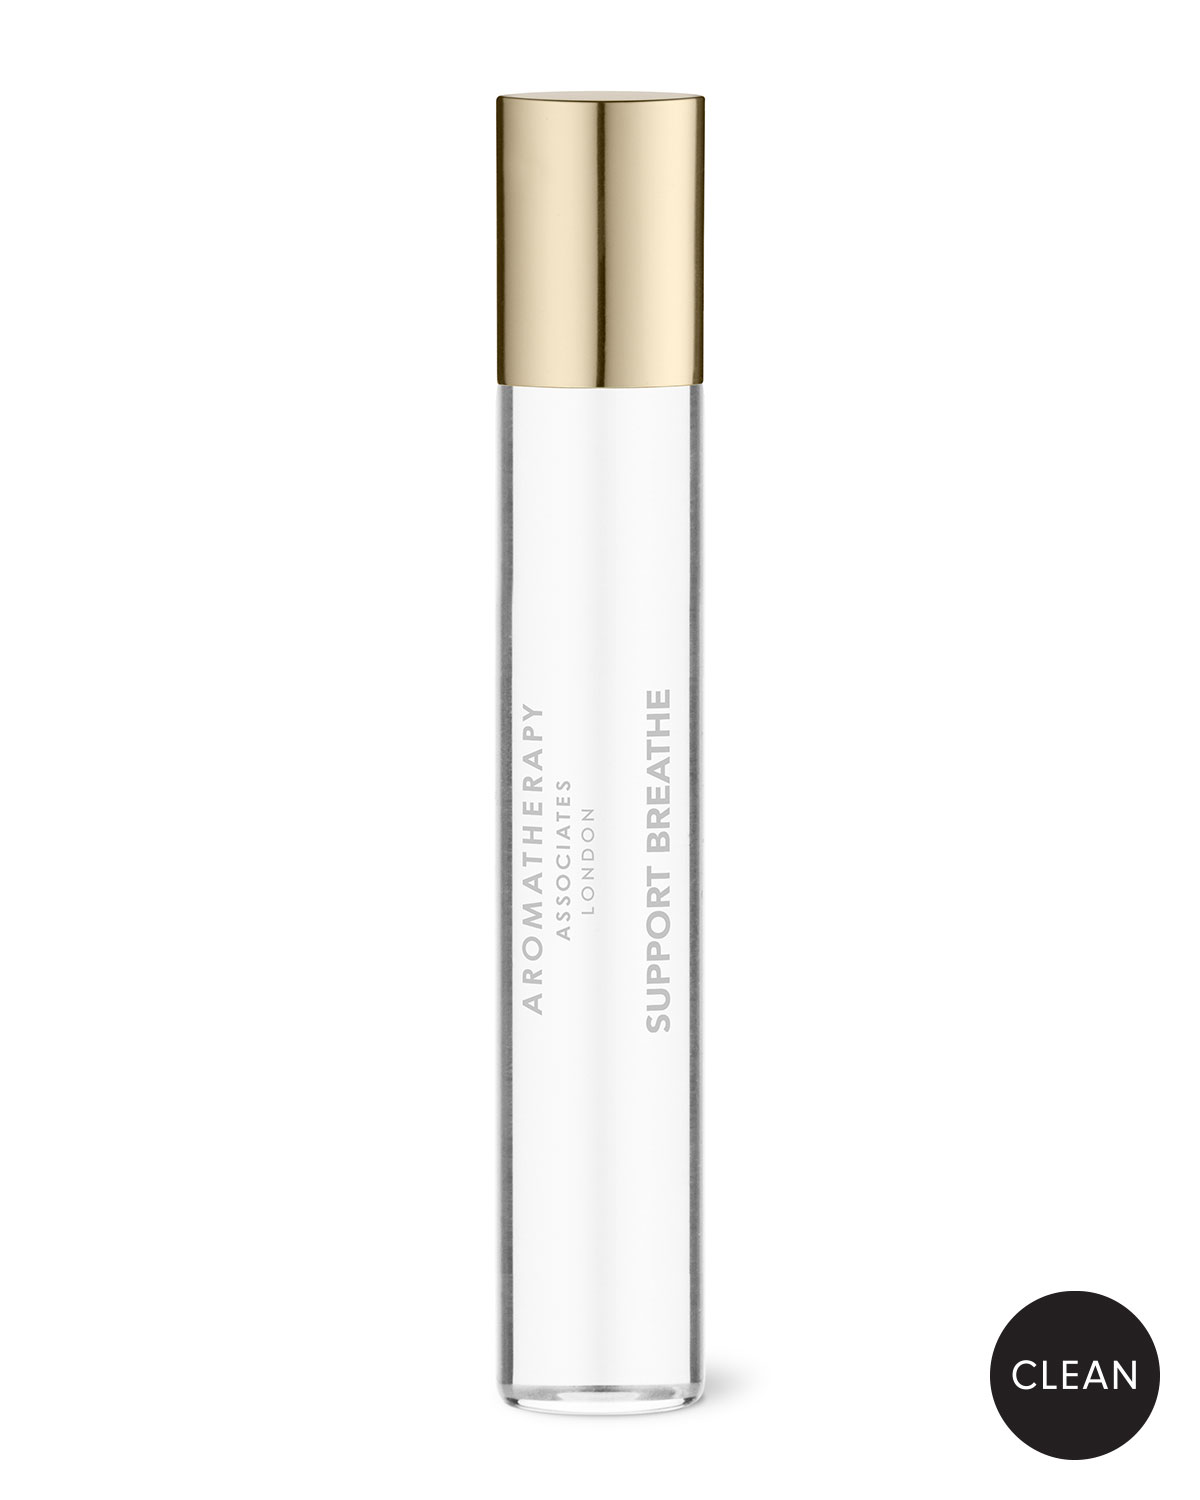 0.34 oz. Support Breathe Rollerball